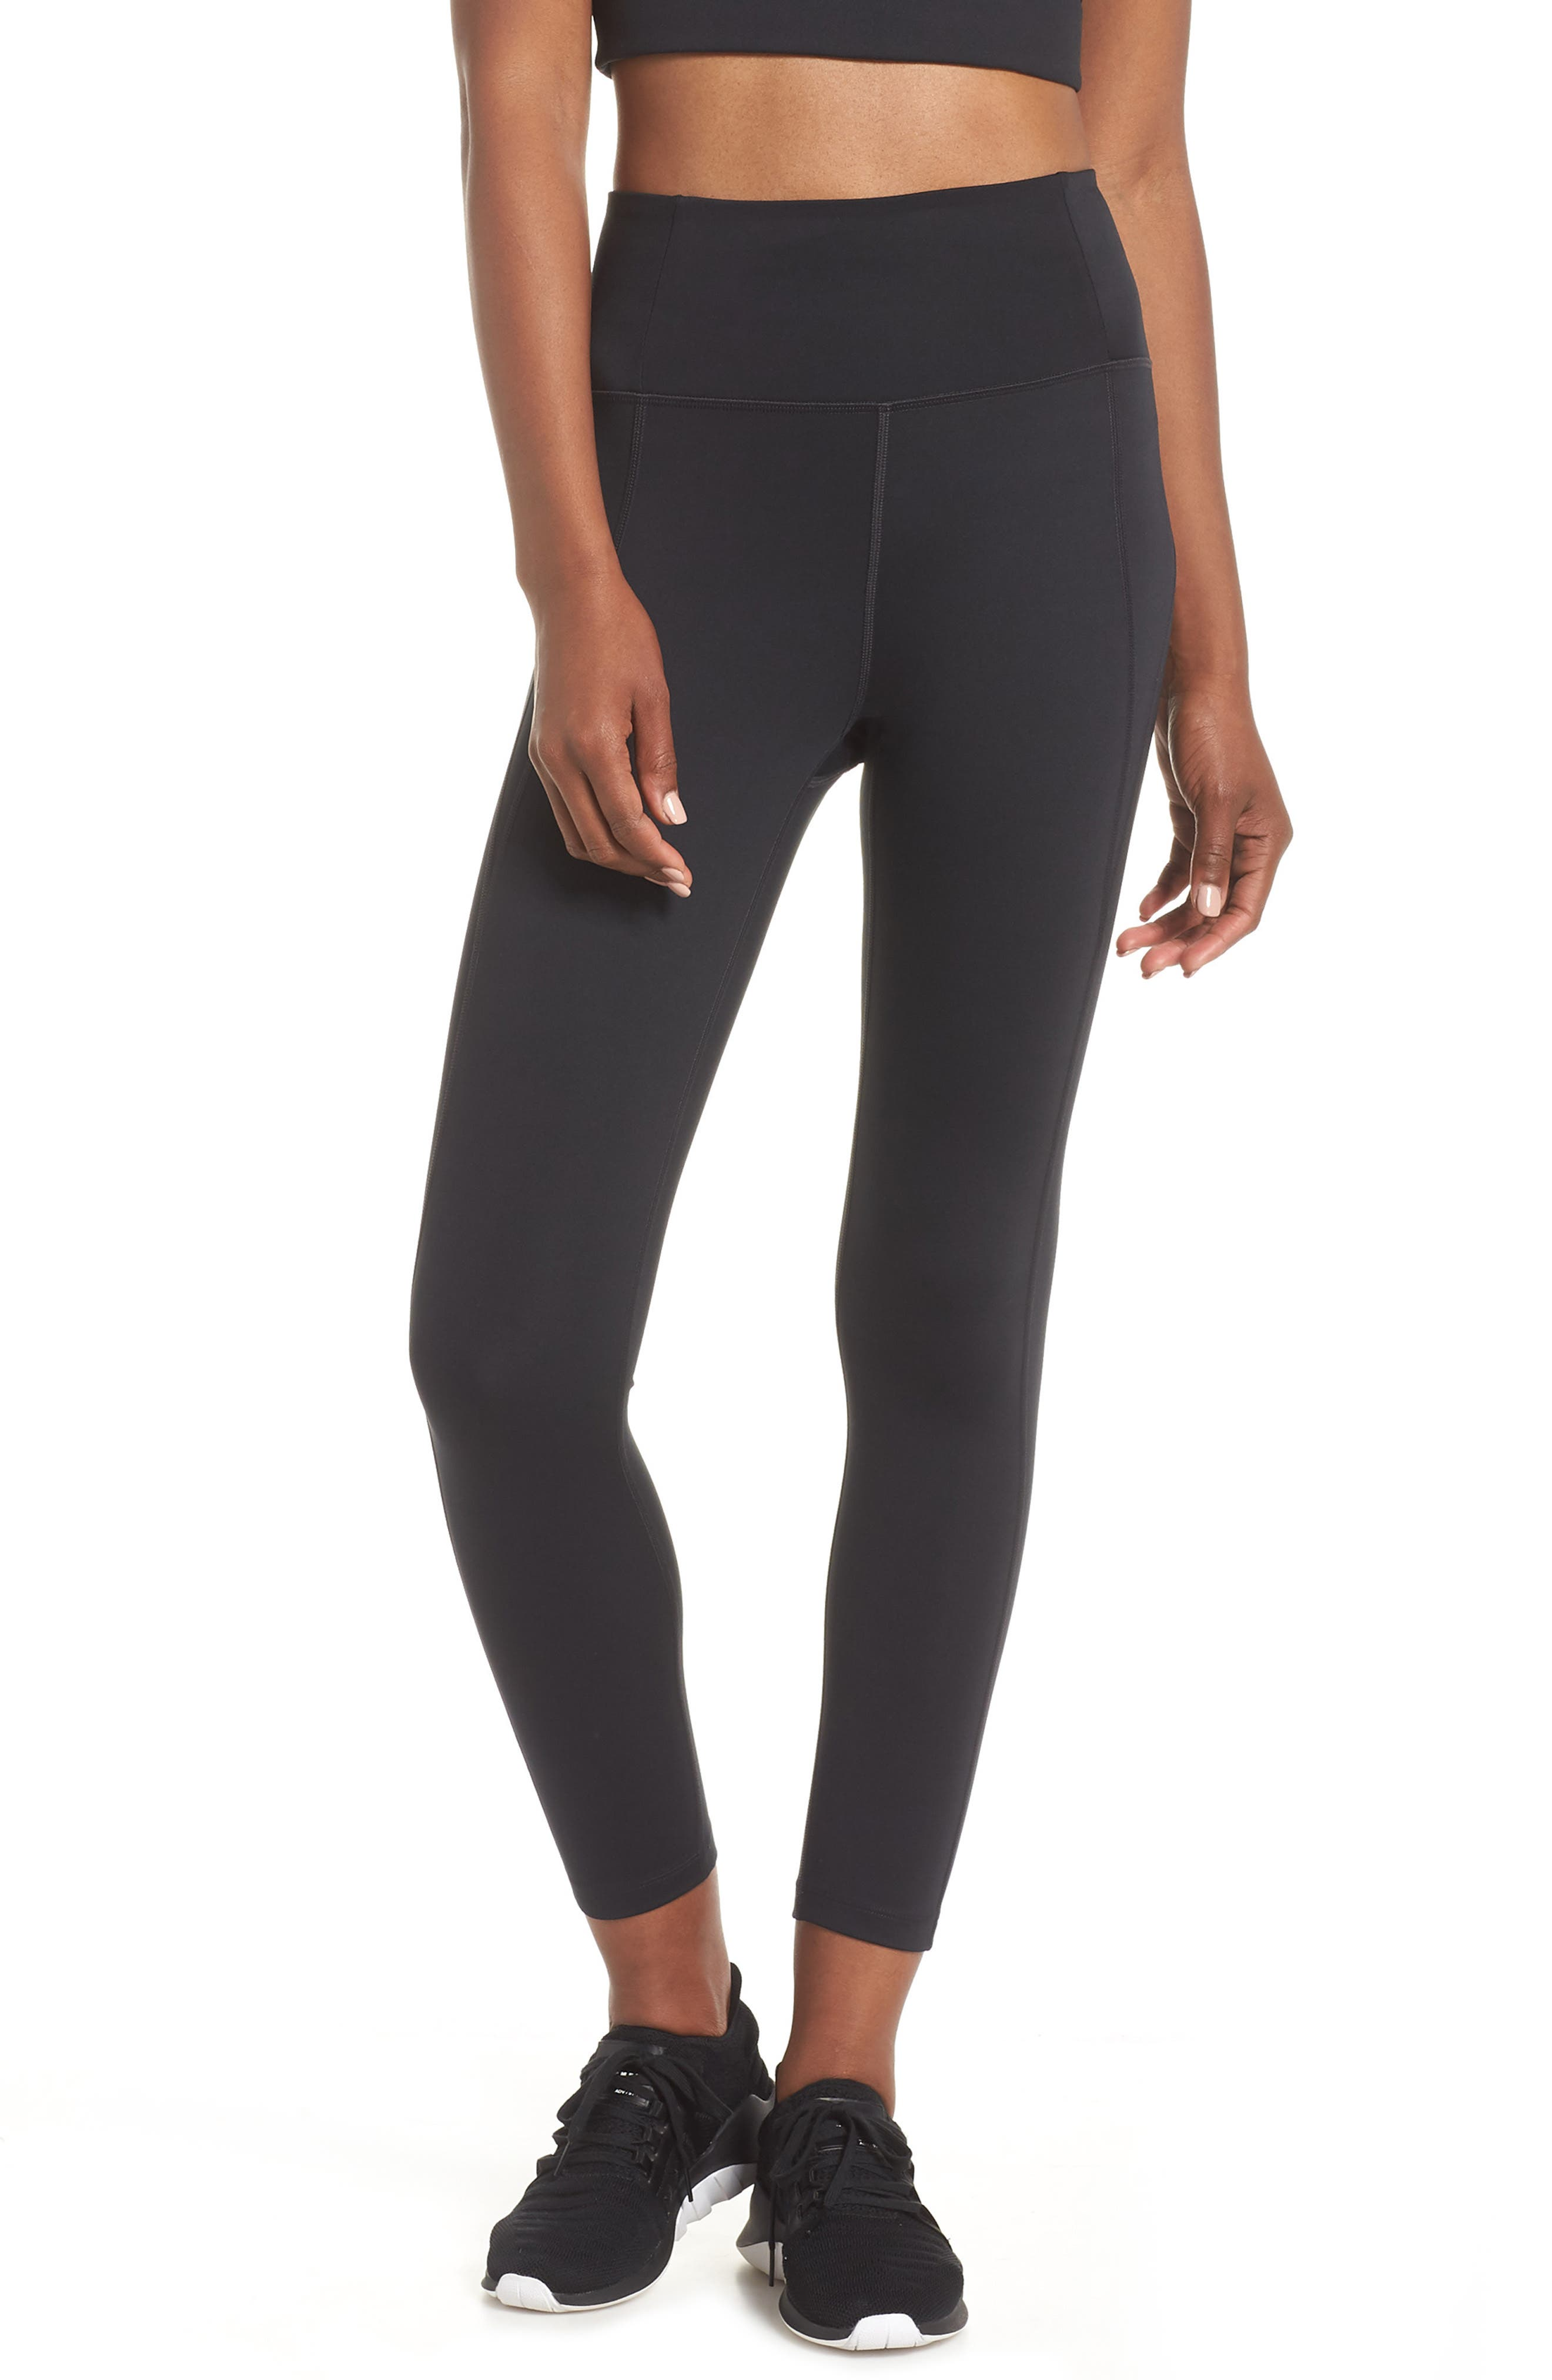 Girlfriend Collective High Waist 7/8 Leggings, Black